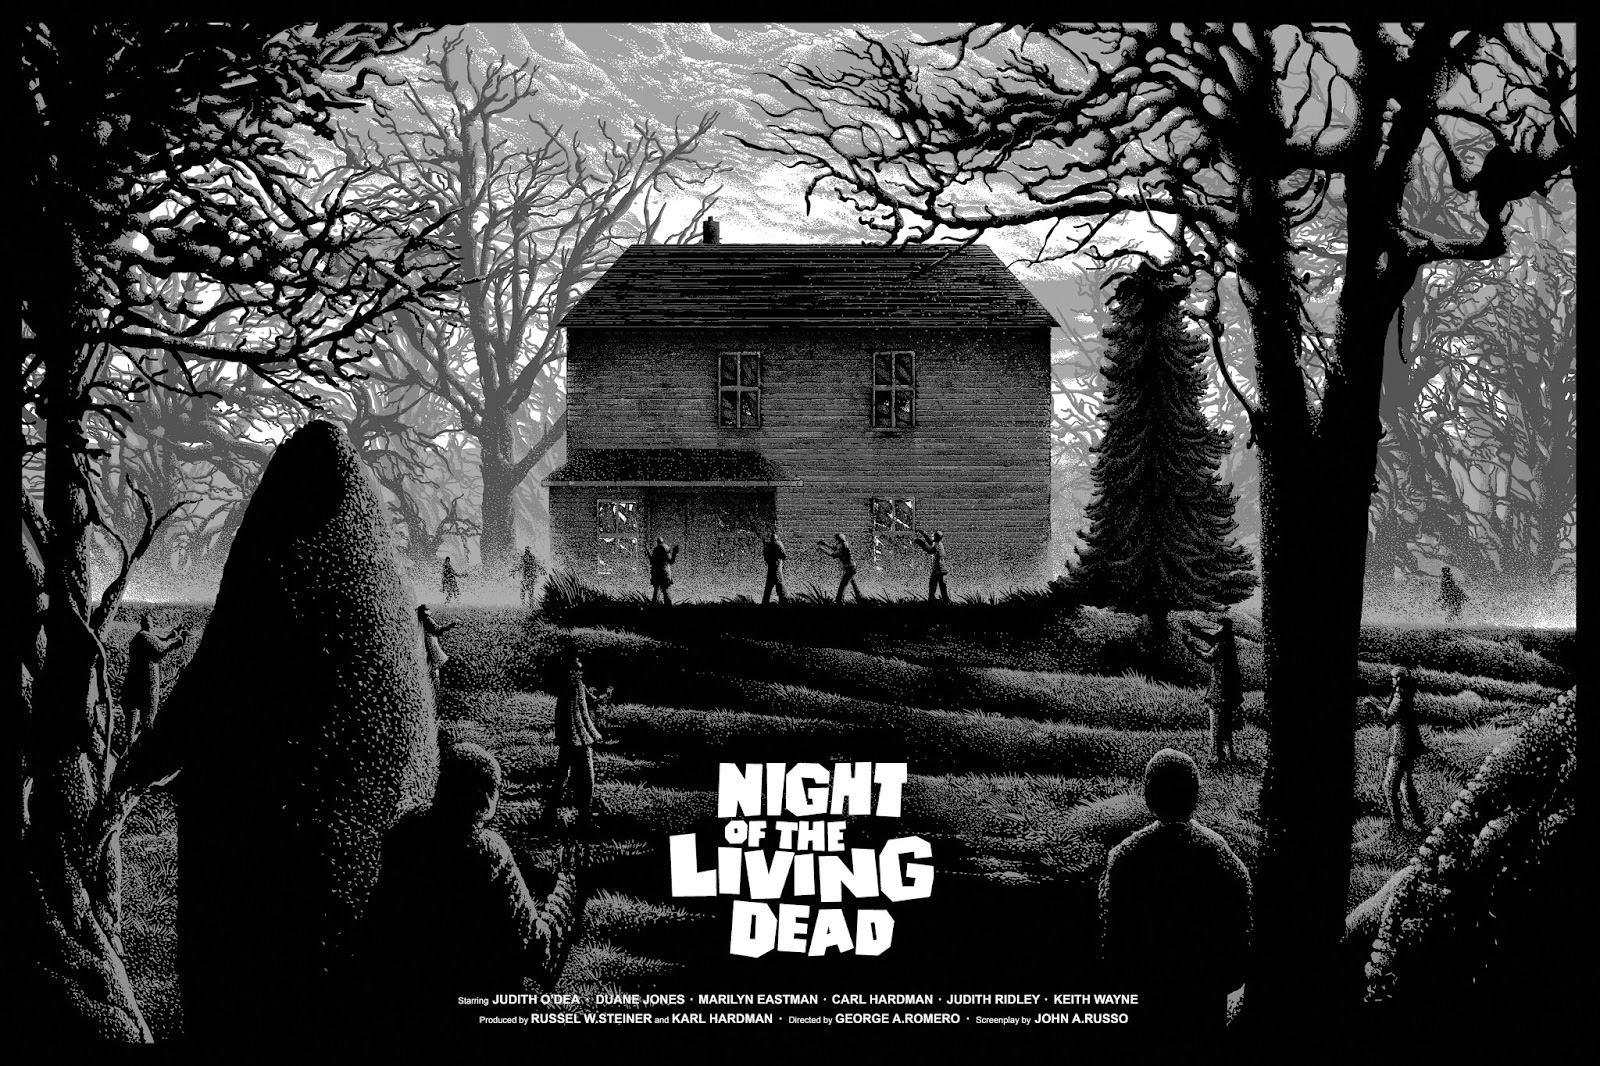 Night of the Living Dead BW Movie Poster Print